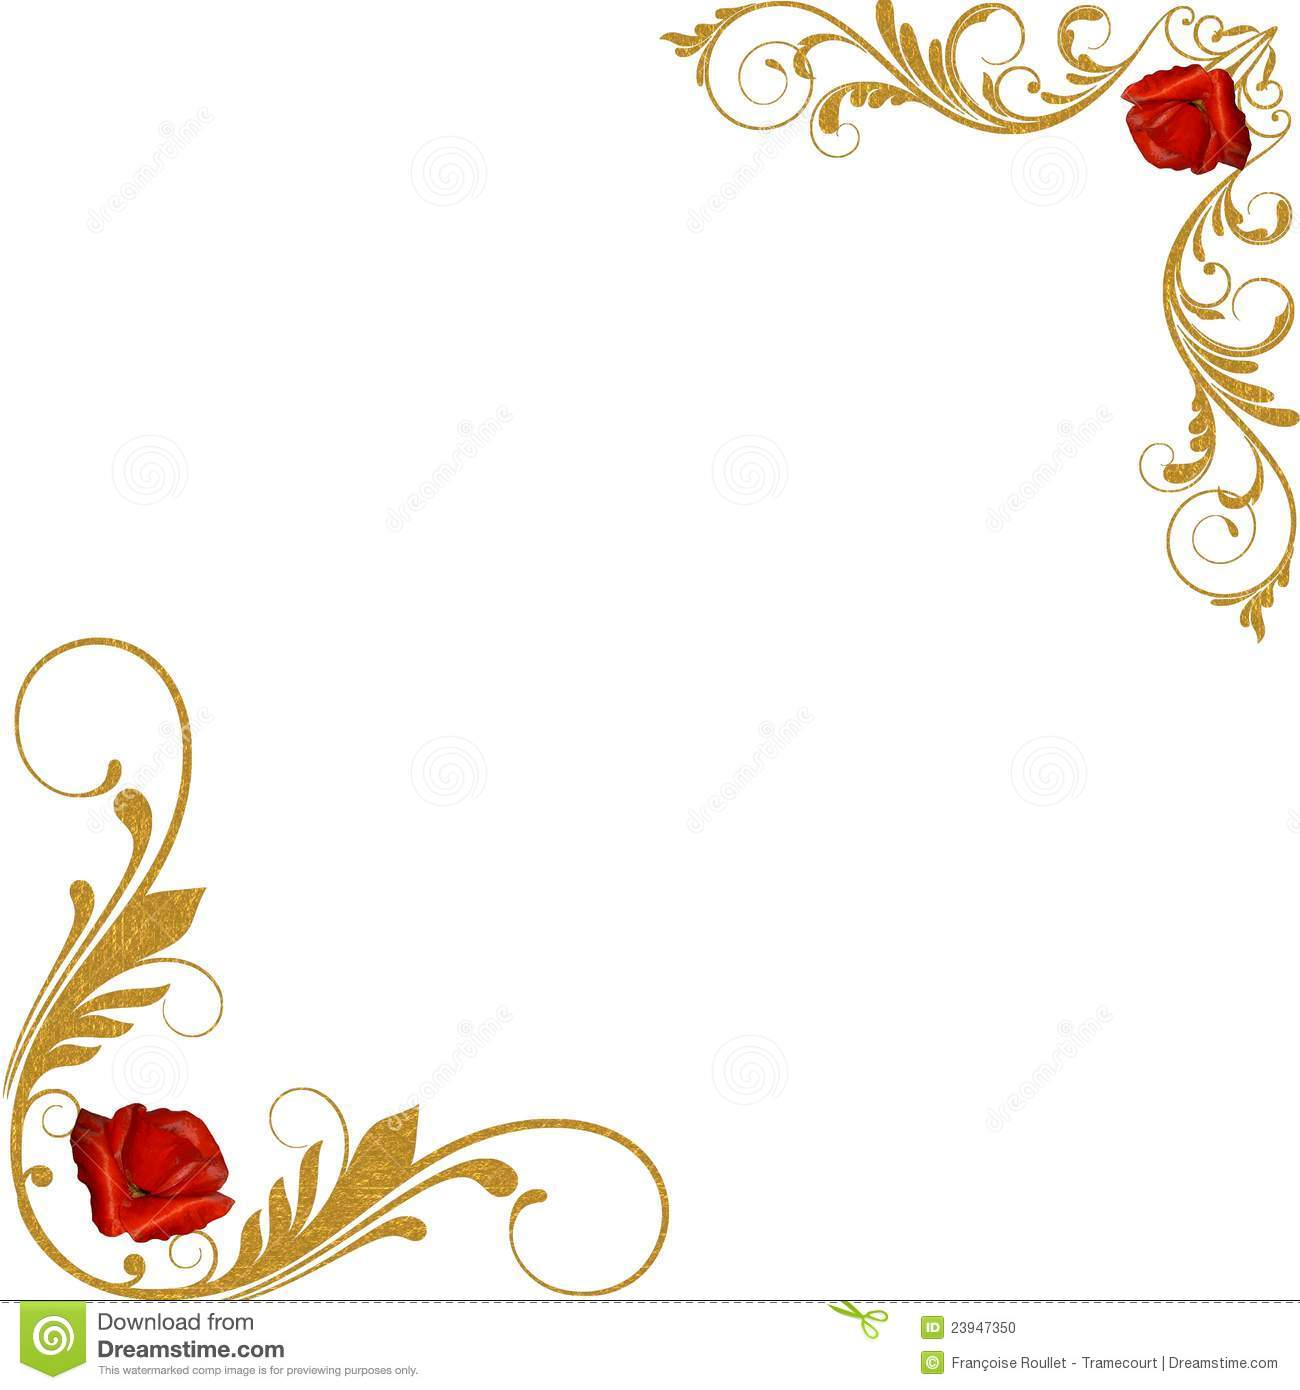 Red Roses Gold Decorative Corners Illustration 23947350